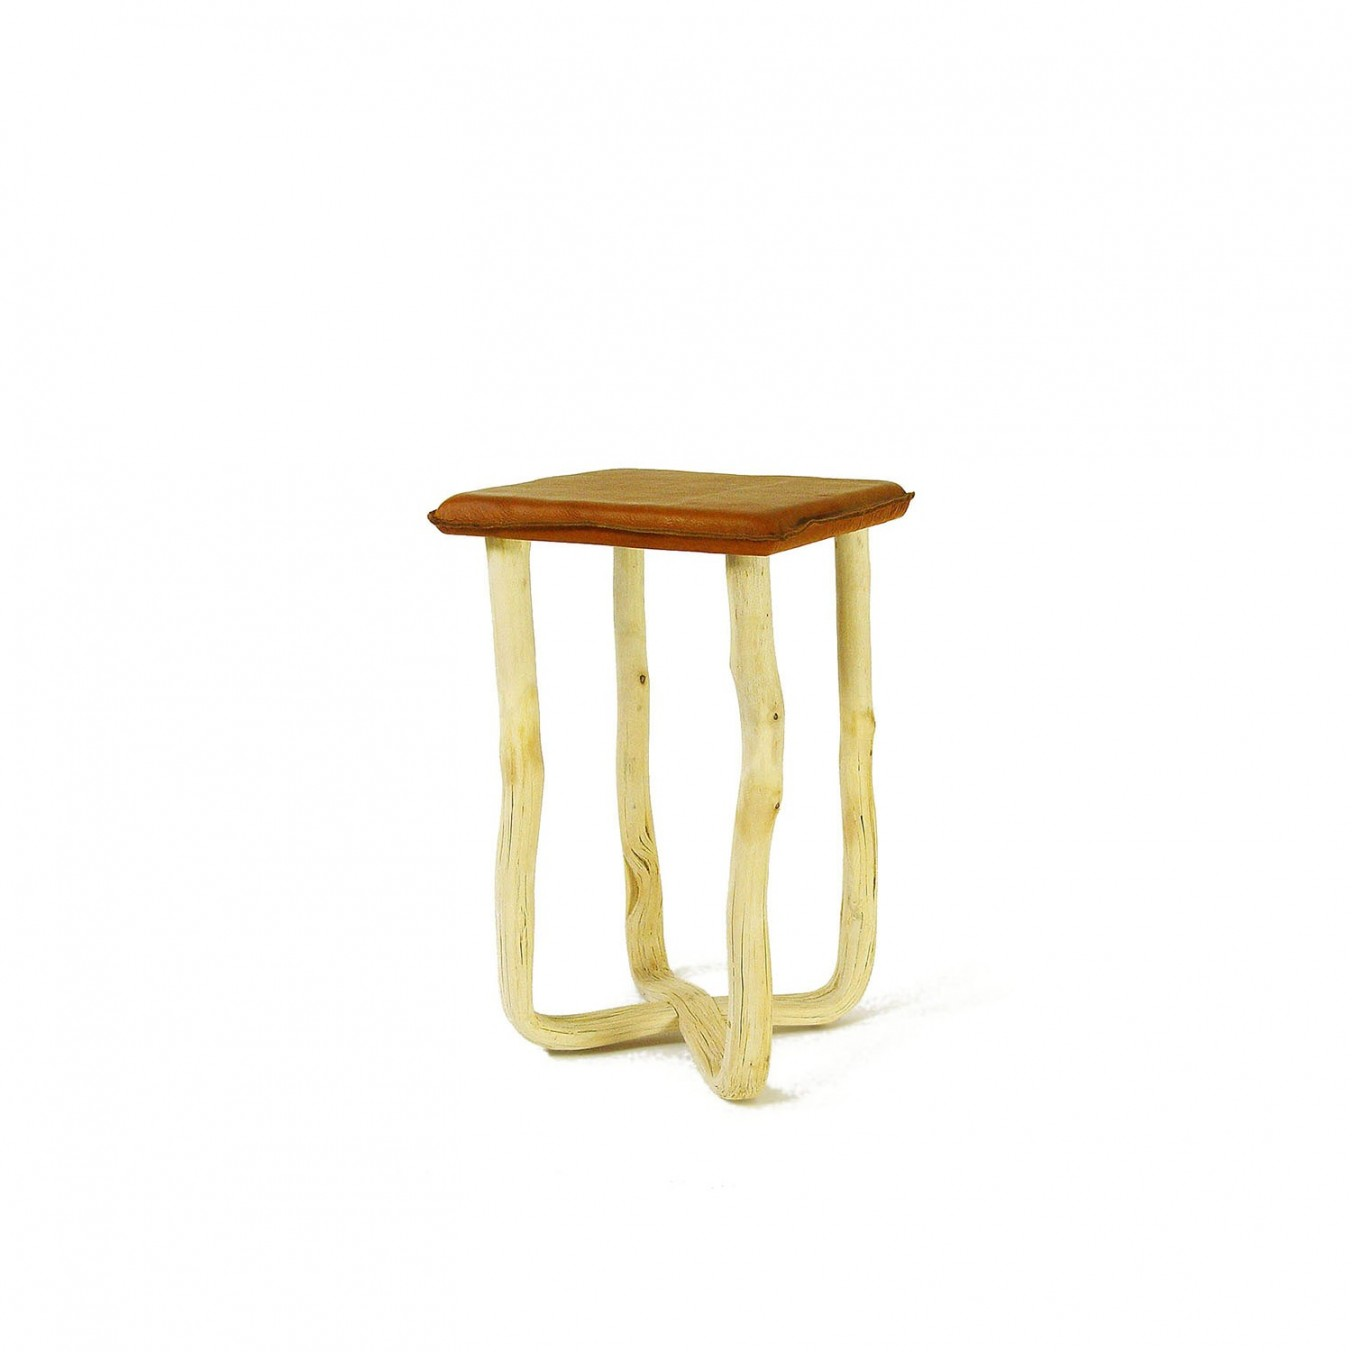 Admirable Pressed Wood Natural Stool Kooku Machost Co Dining Chair Design Ideas Machostcouk